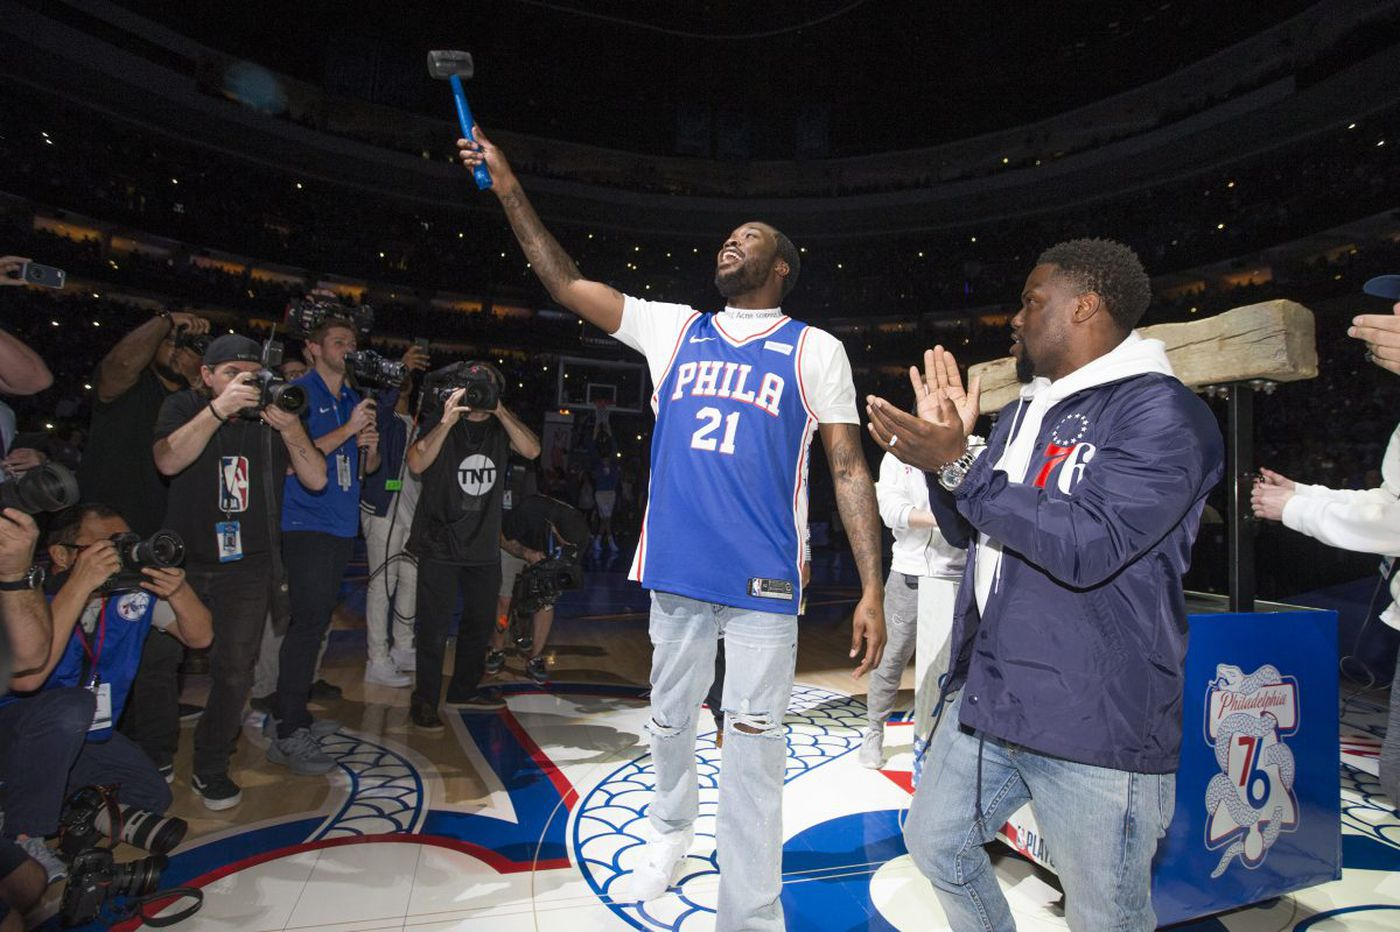 WATCH  Meek Mill rings the bell before Sixers-Heat NBA playoff game after  being freed from prison f19425a40